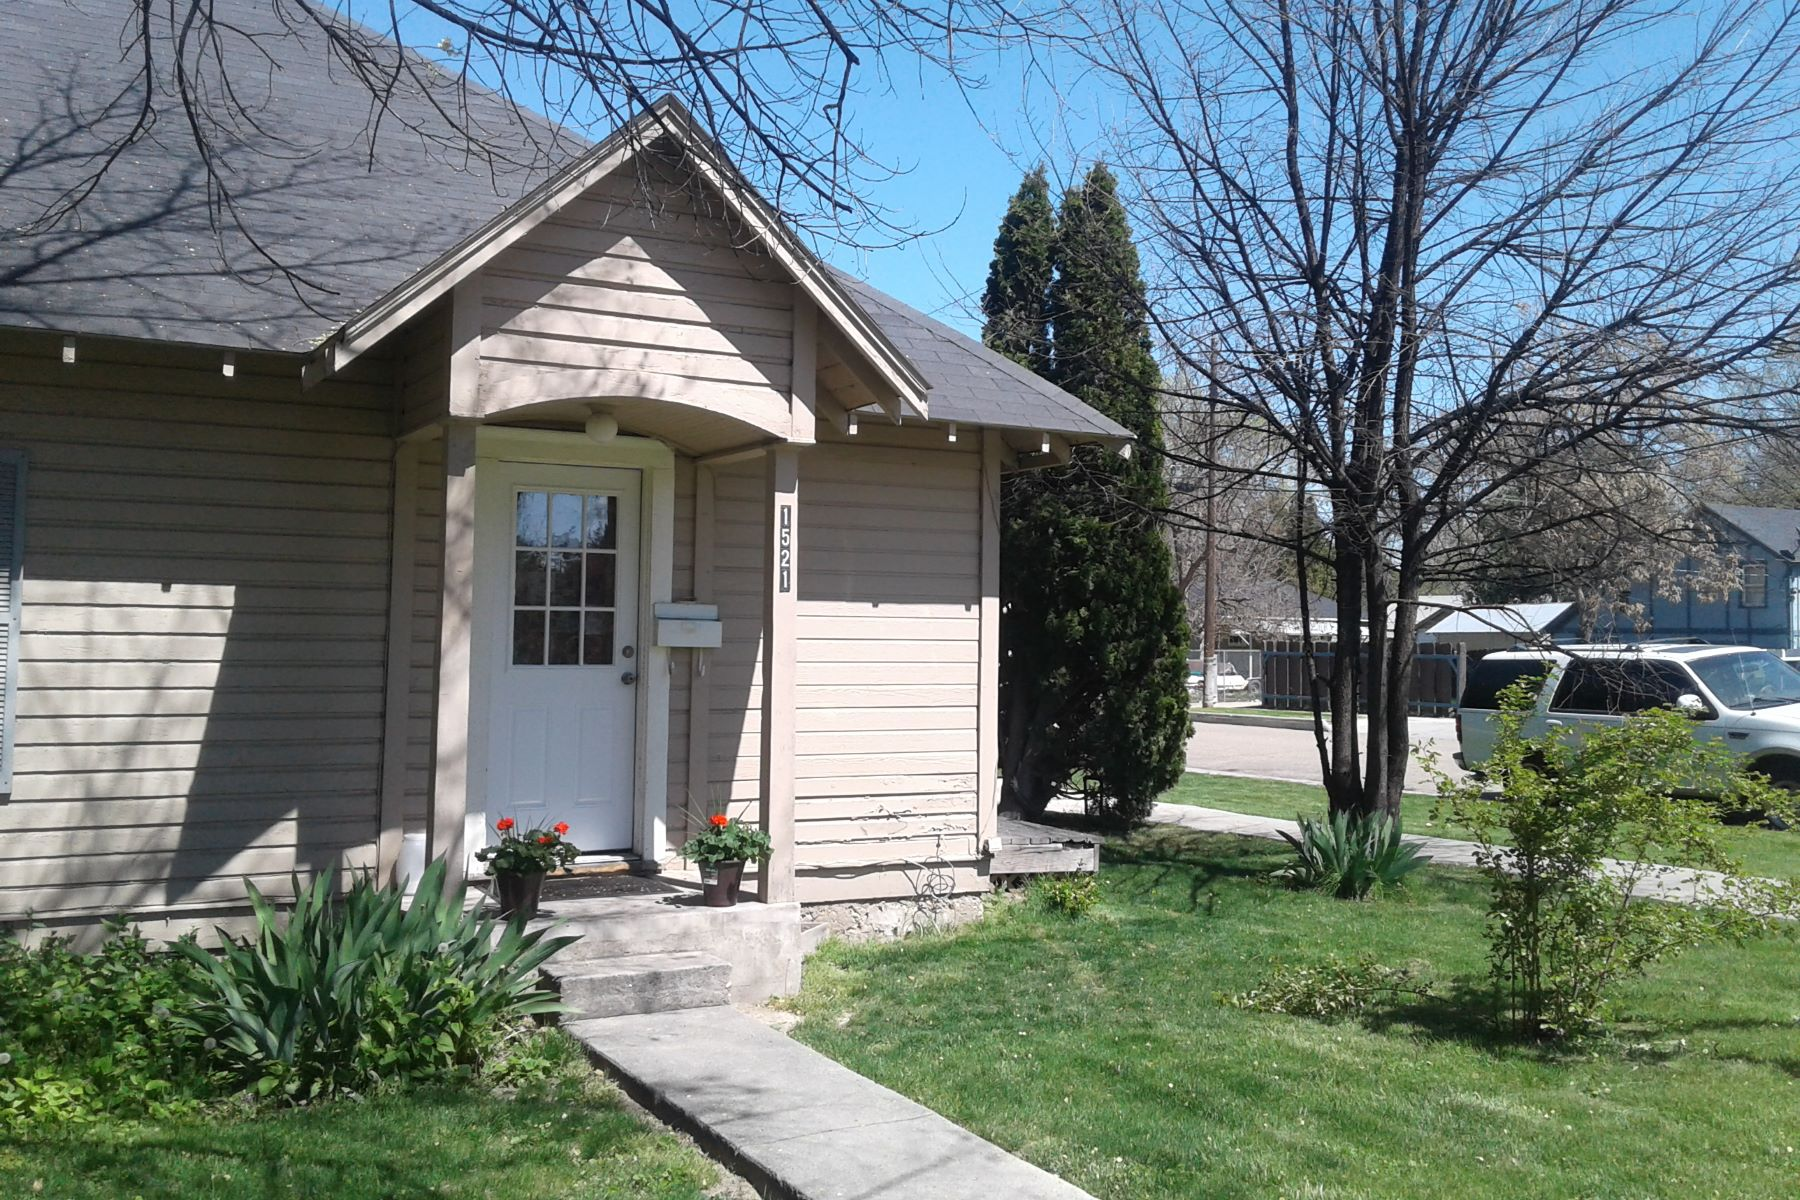 Multi-Family Homes for Sale at 1521 Blaine St, Caldwell 1521 Blaine St Caldwell, Idaho 83605 United States